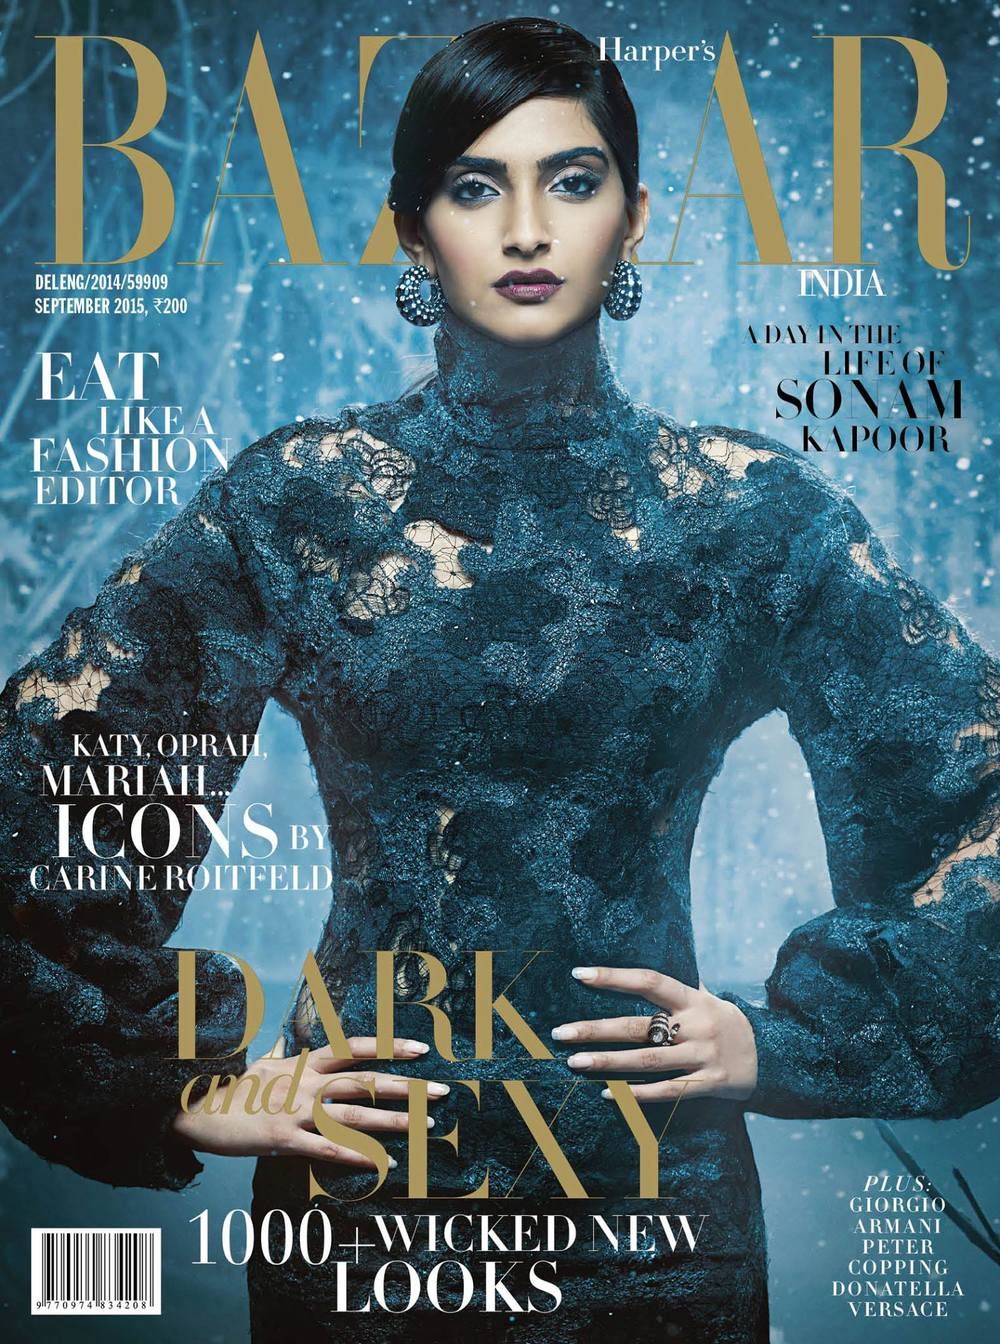 Sonam Kapoor for Harper's Bazaar - September 2015